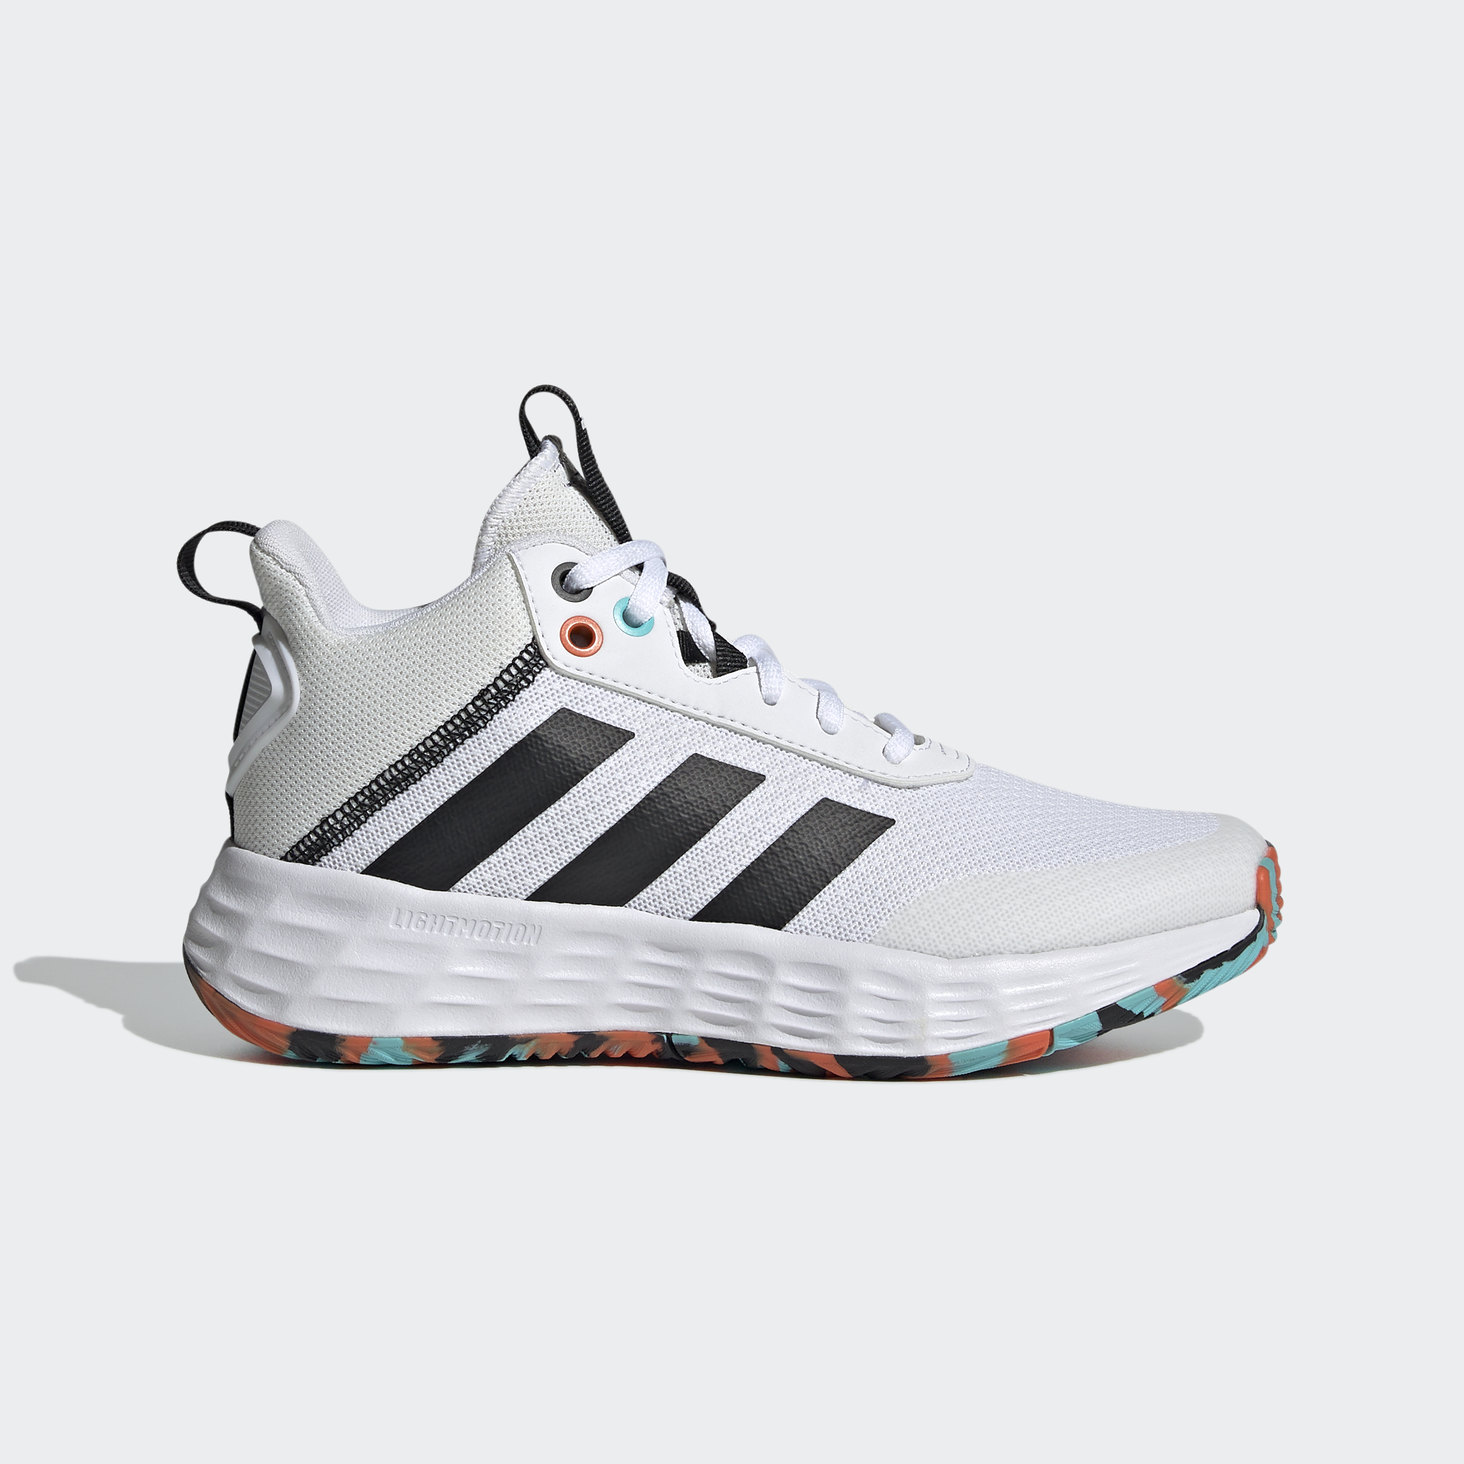 OWNTHEGAME 2.0 SHOES